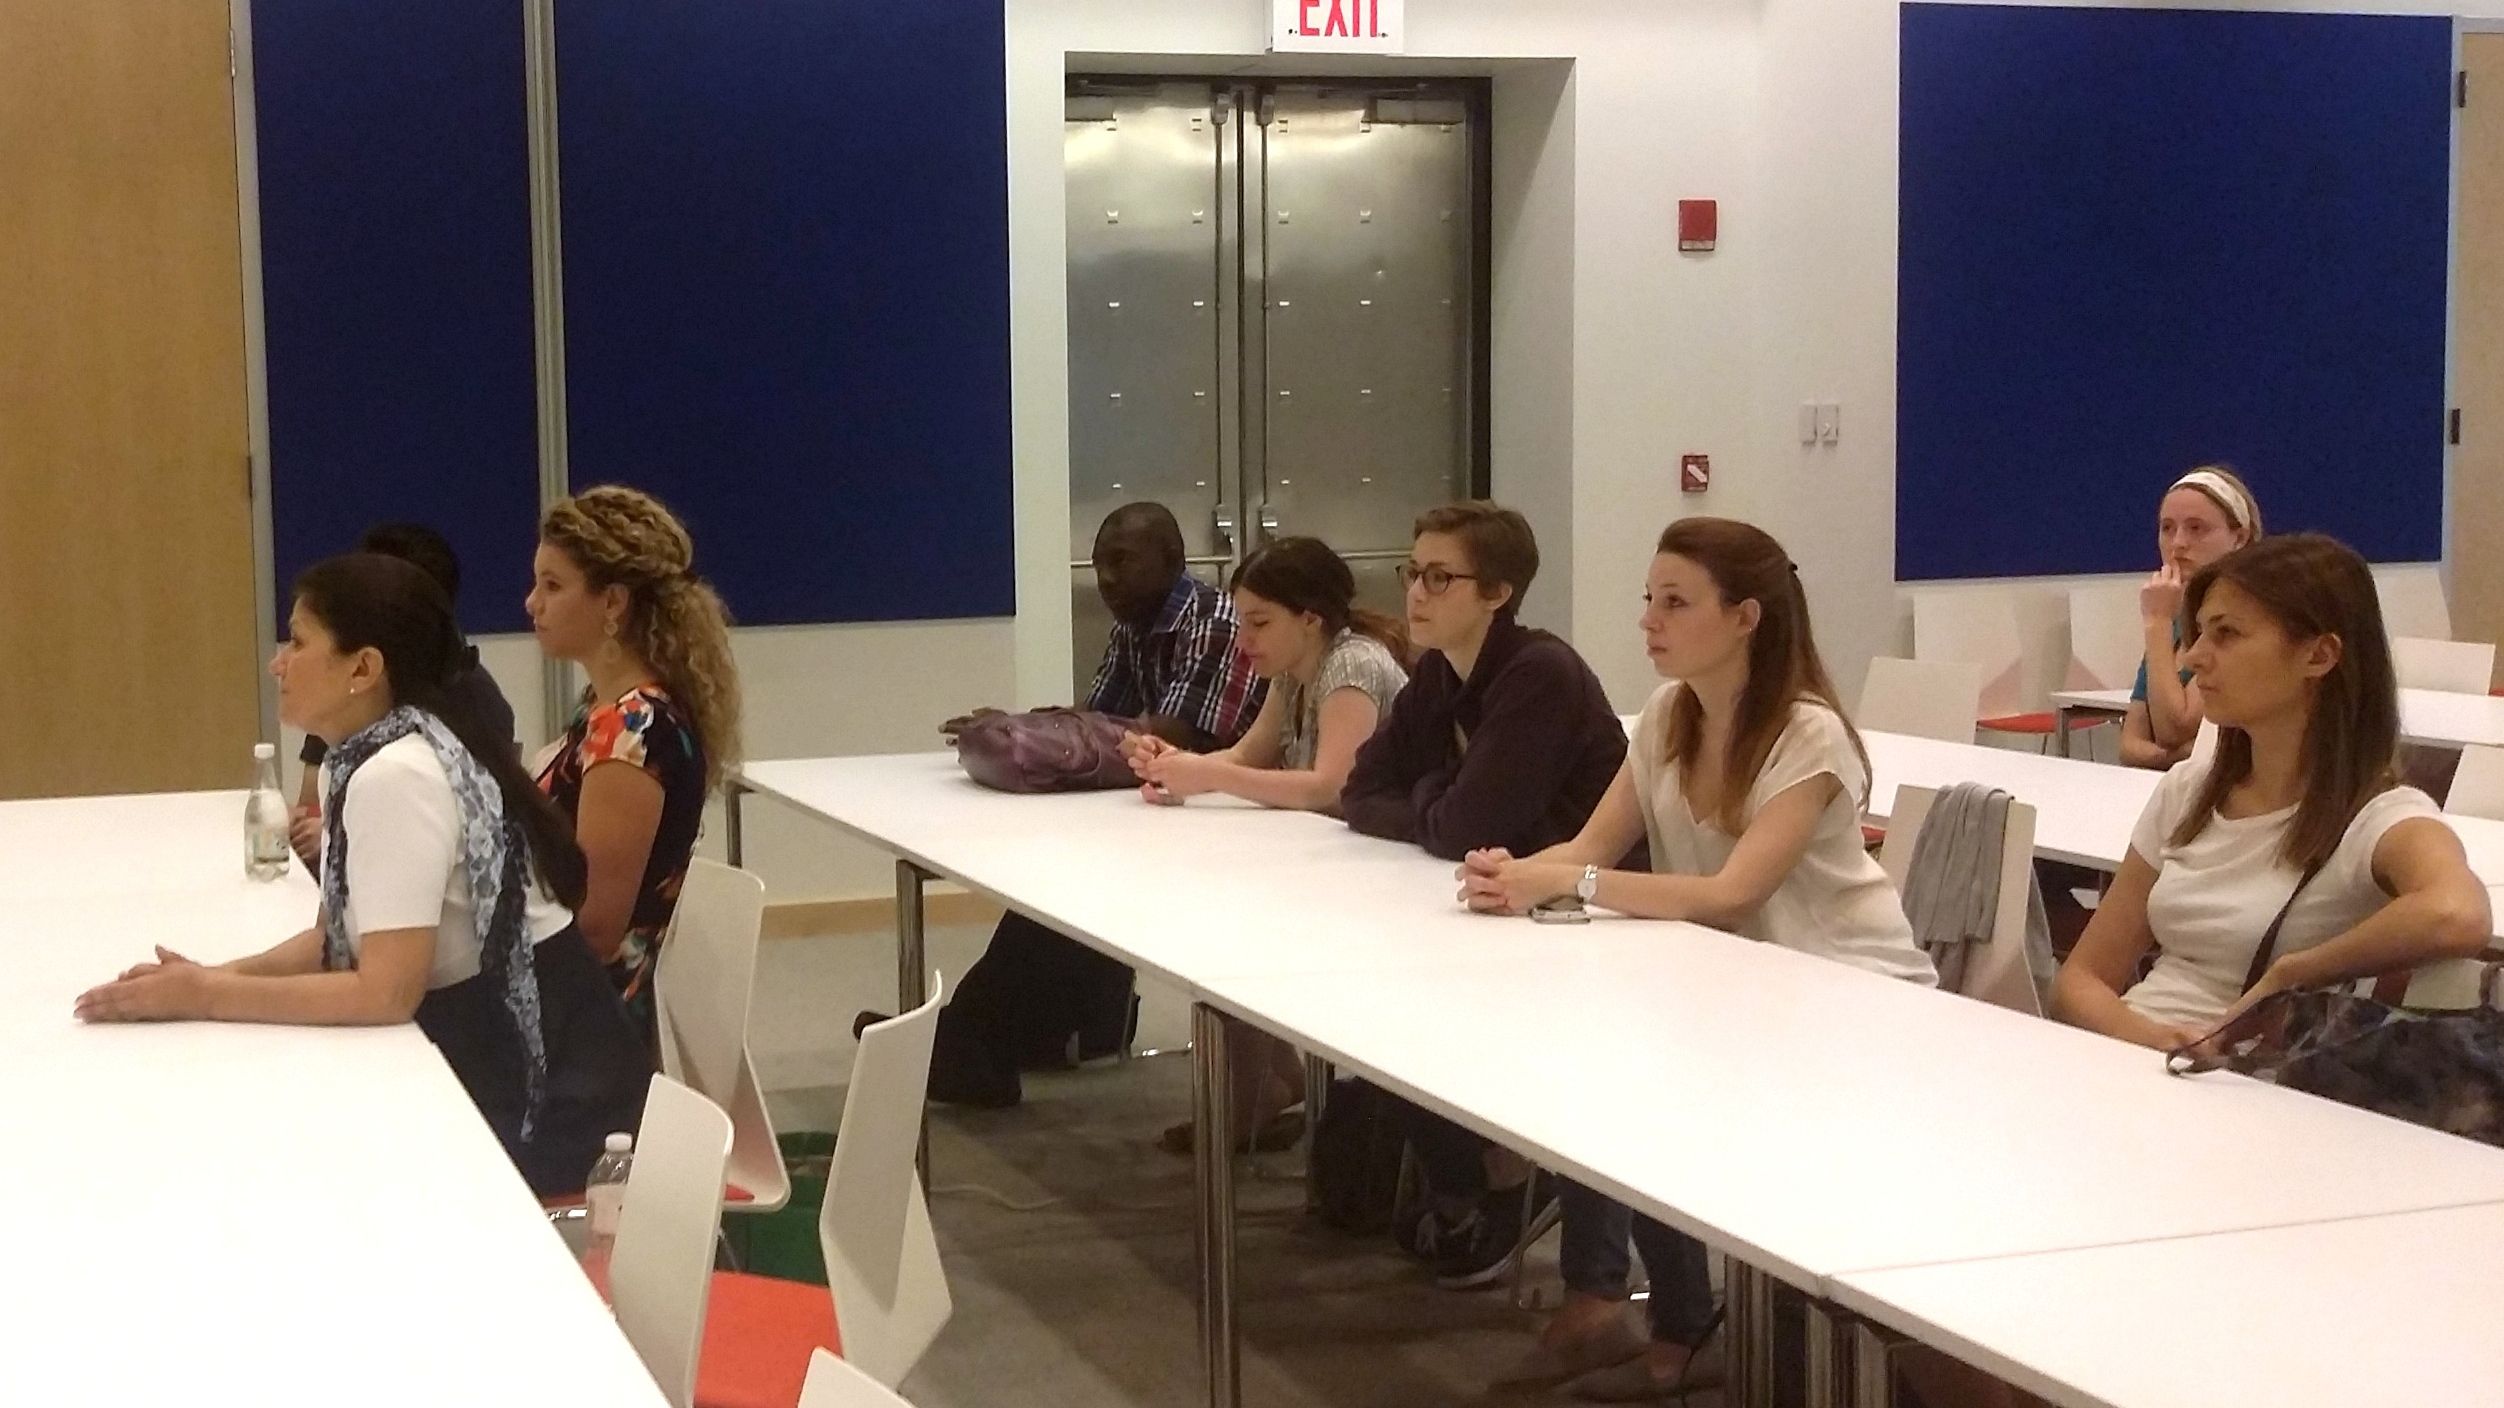 Summer school students listen to New York Genome Center employees discuss their jobs and the ethics behind genomic sequencing.